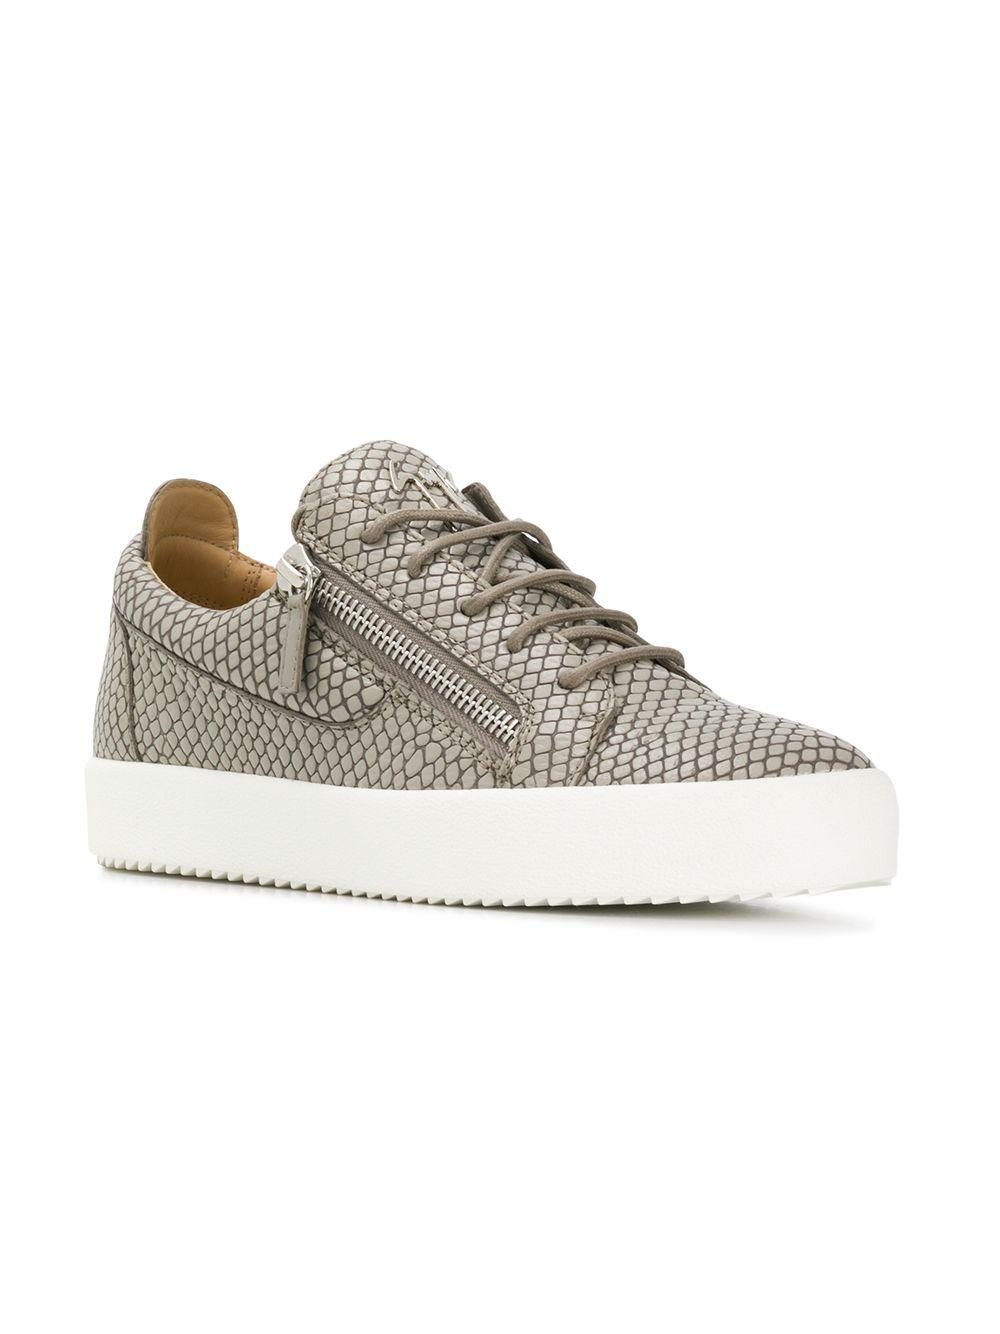 137e92afd15a3 Lyst - Giuseppe Zanotti Tejay Sneakers in Gray for Men - Save 15%